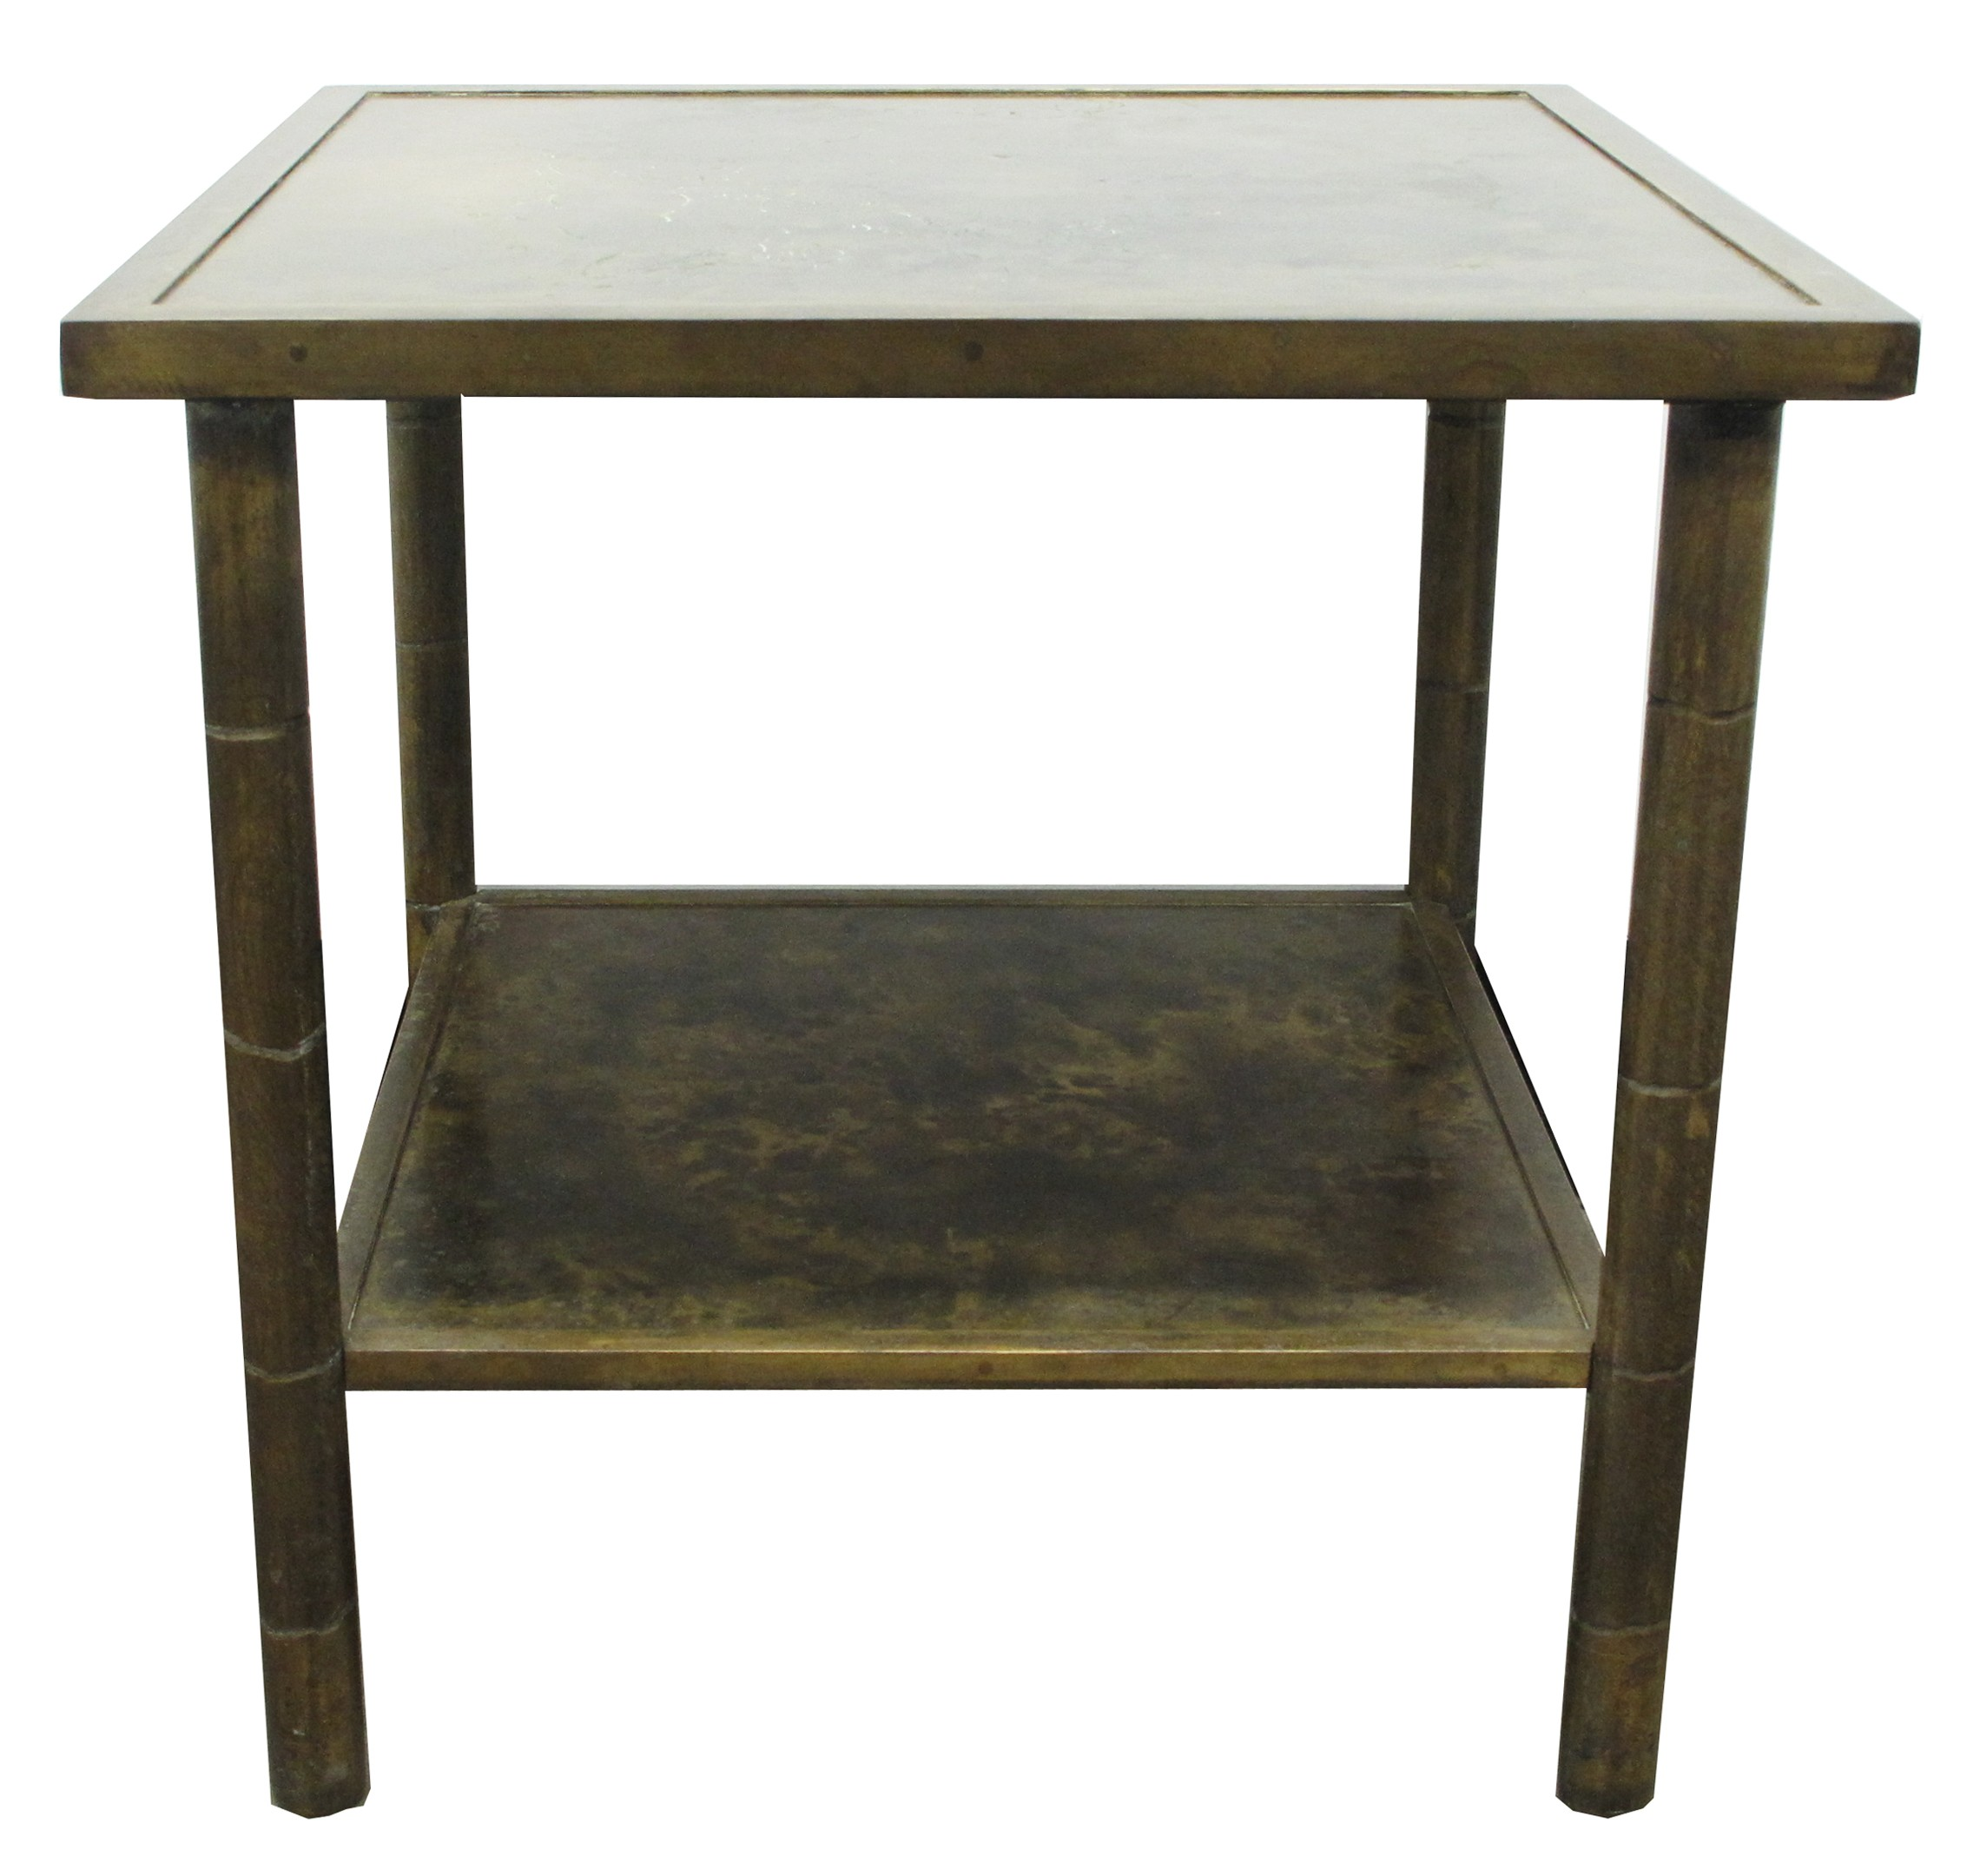 Vintage Brass Side Table Lost And Found